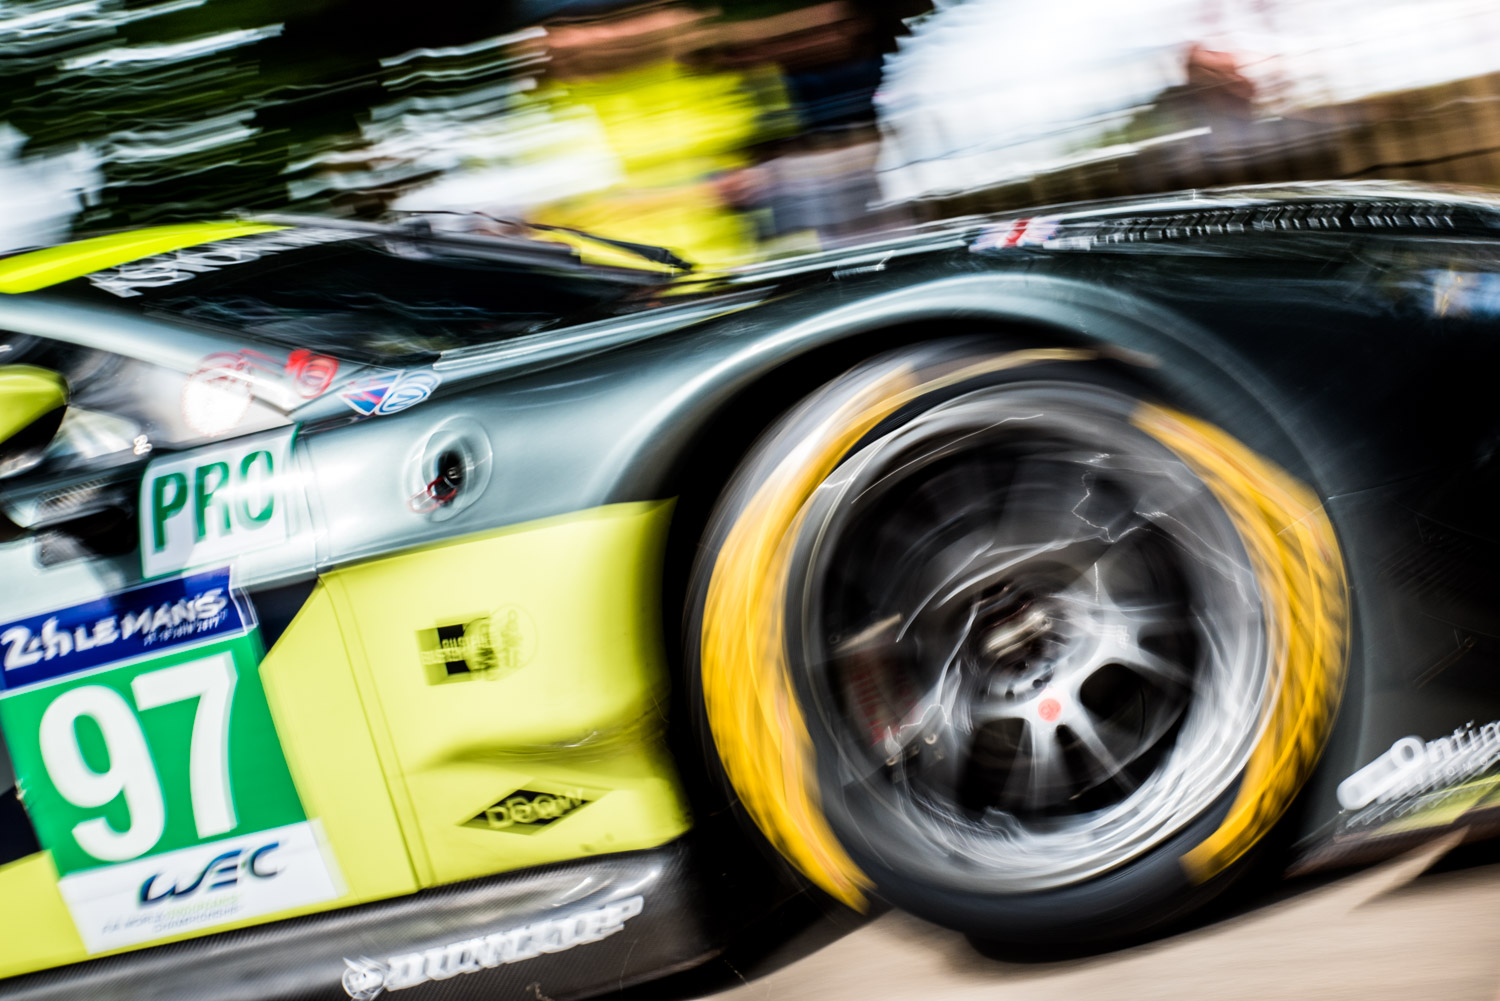 Jayson-Fong-Photography-Form-and-function-international-Aston-Martin-Racing-Vantage.jpg